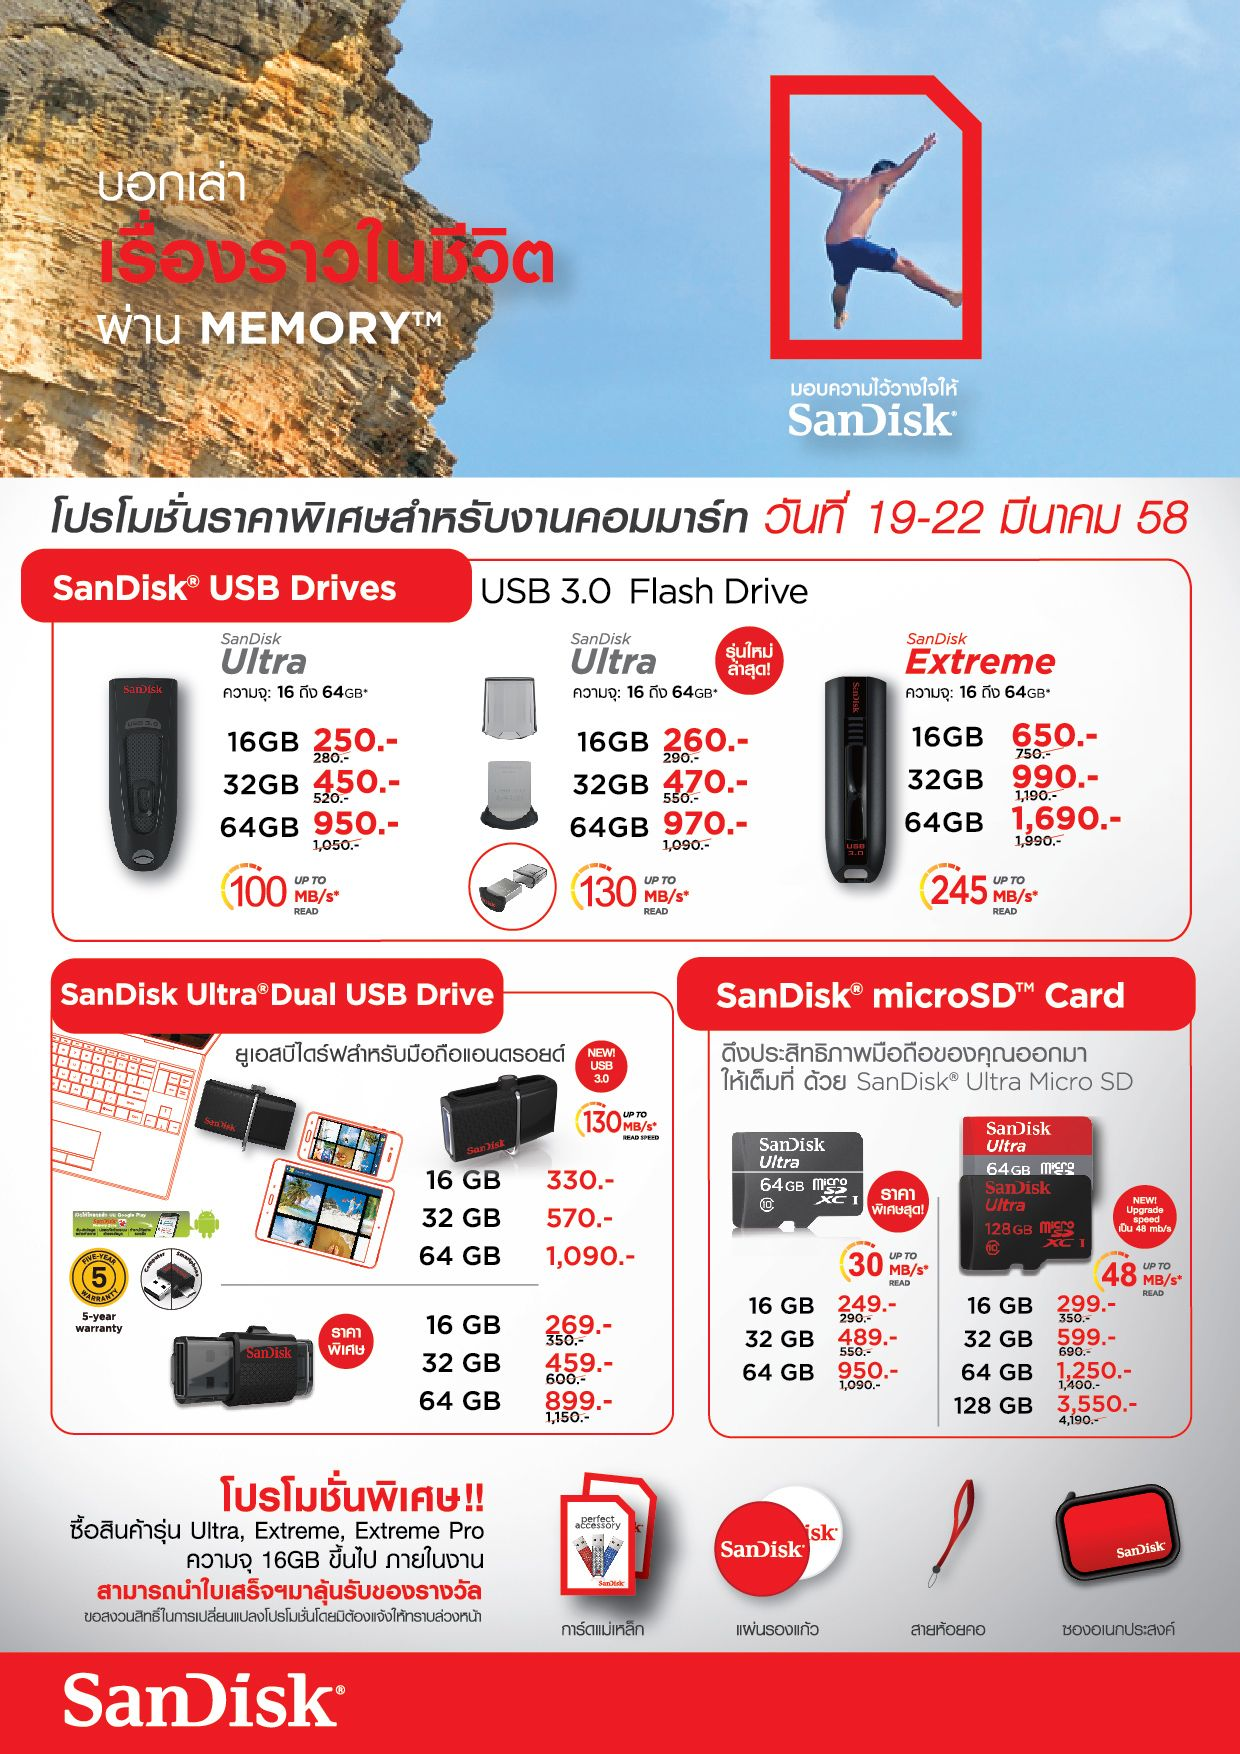 AW-SANDISK-FLYER A4